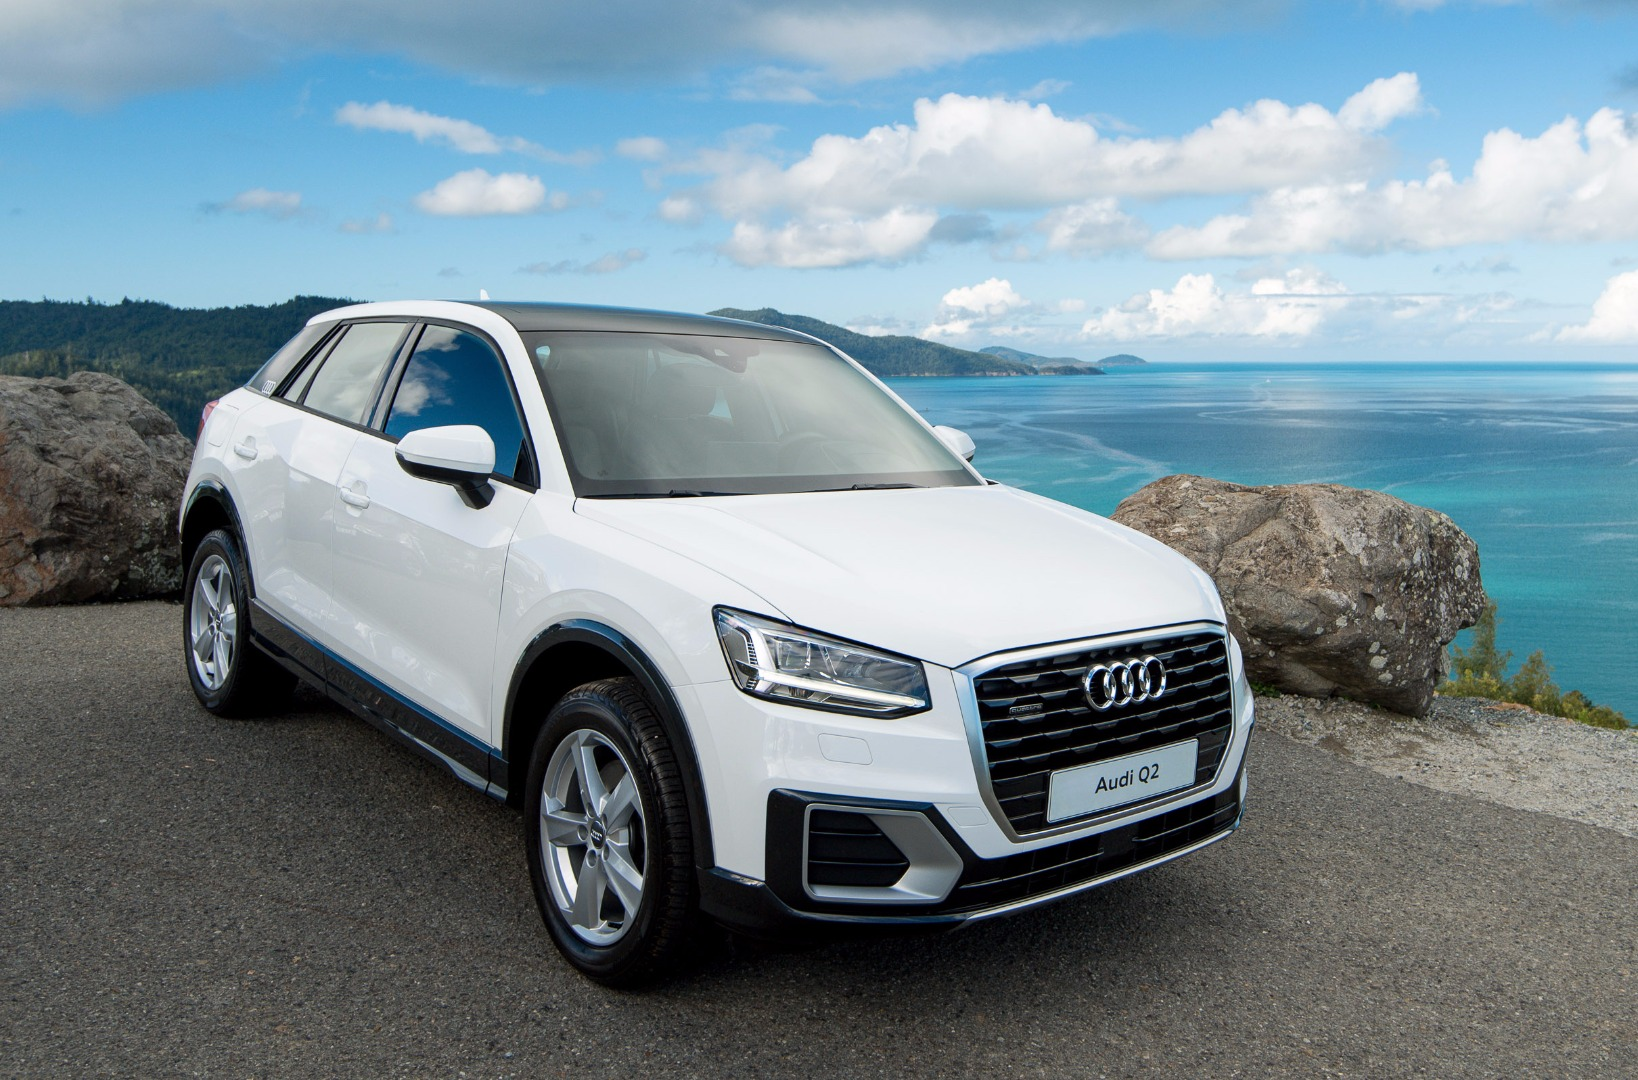 news audi s all new q2 gets hamilton island debut. Black Bedroom Furniture Sets. Home Design Ideas